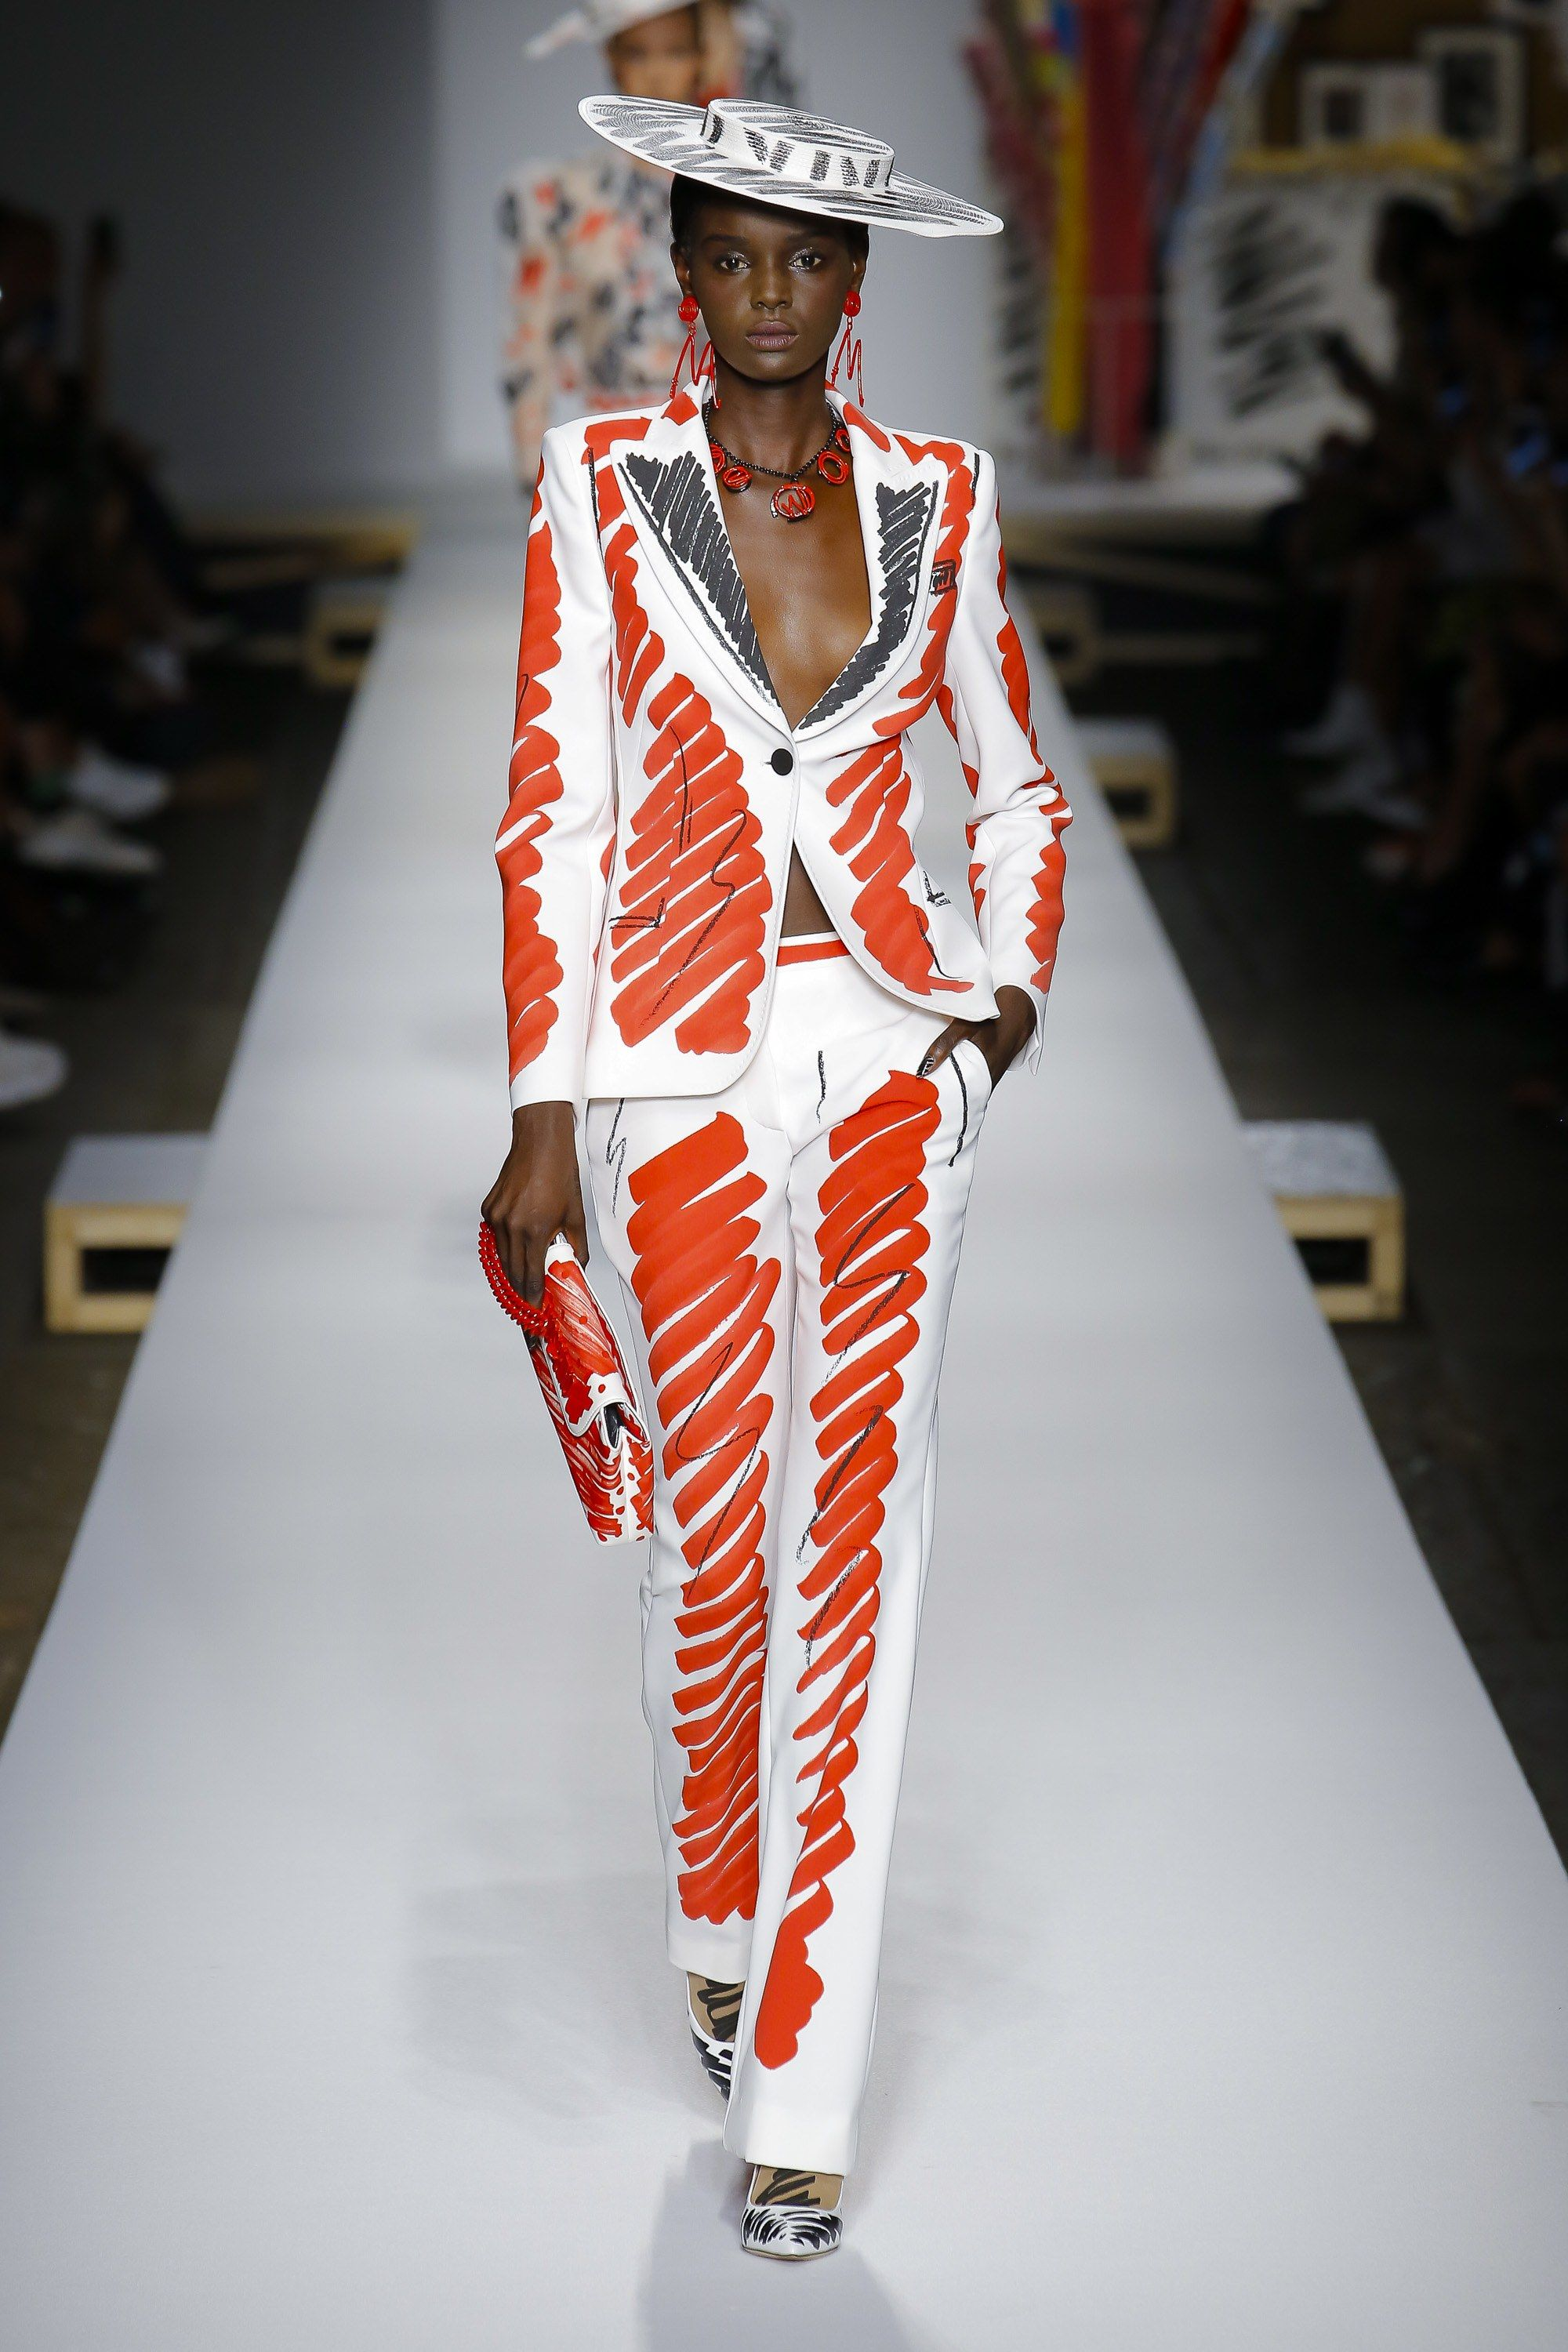 95bbc8dfdd White suit with orange scribble by Jeremy Scott for Moschino Spring 2019  Ready-to-Wear Collection - Vogue